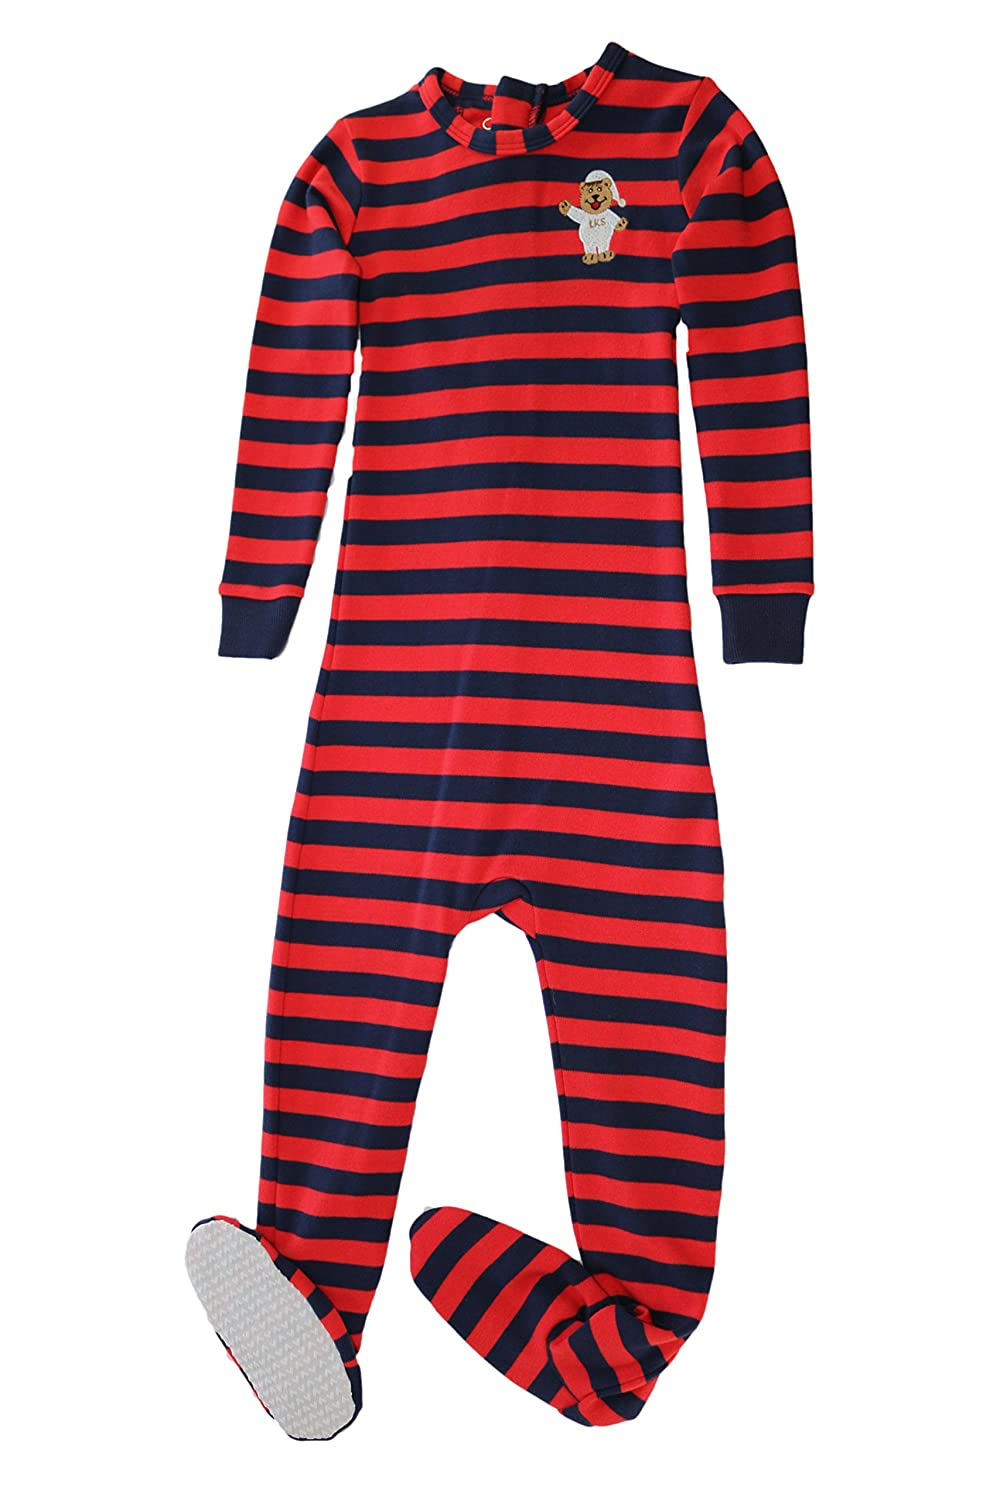 Little Keeper Sleeper Boys' 100% Cotton (Size 2T-5T) Long Sleeve Footed Zip Back Inescapable Pajamas LKS18-24FFB-$P